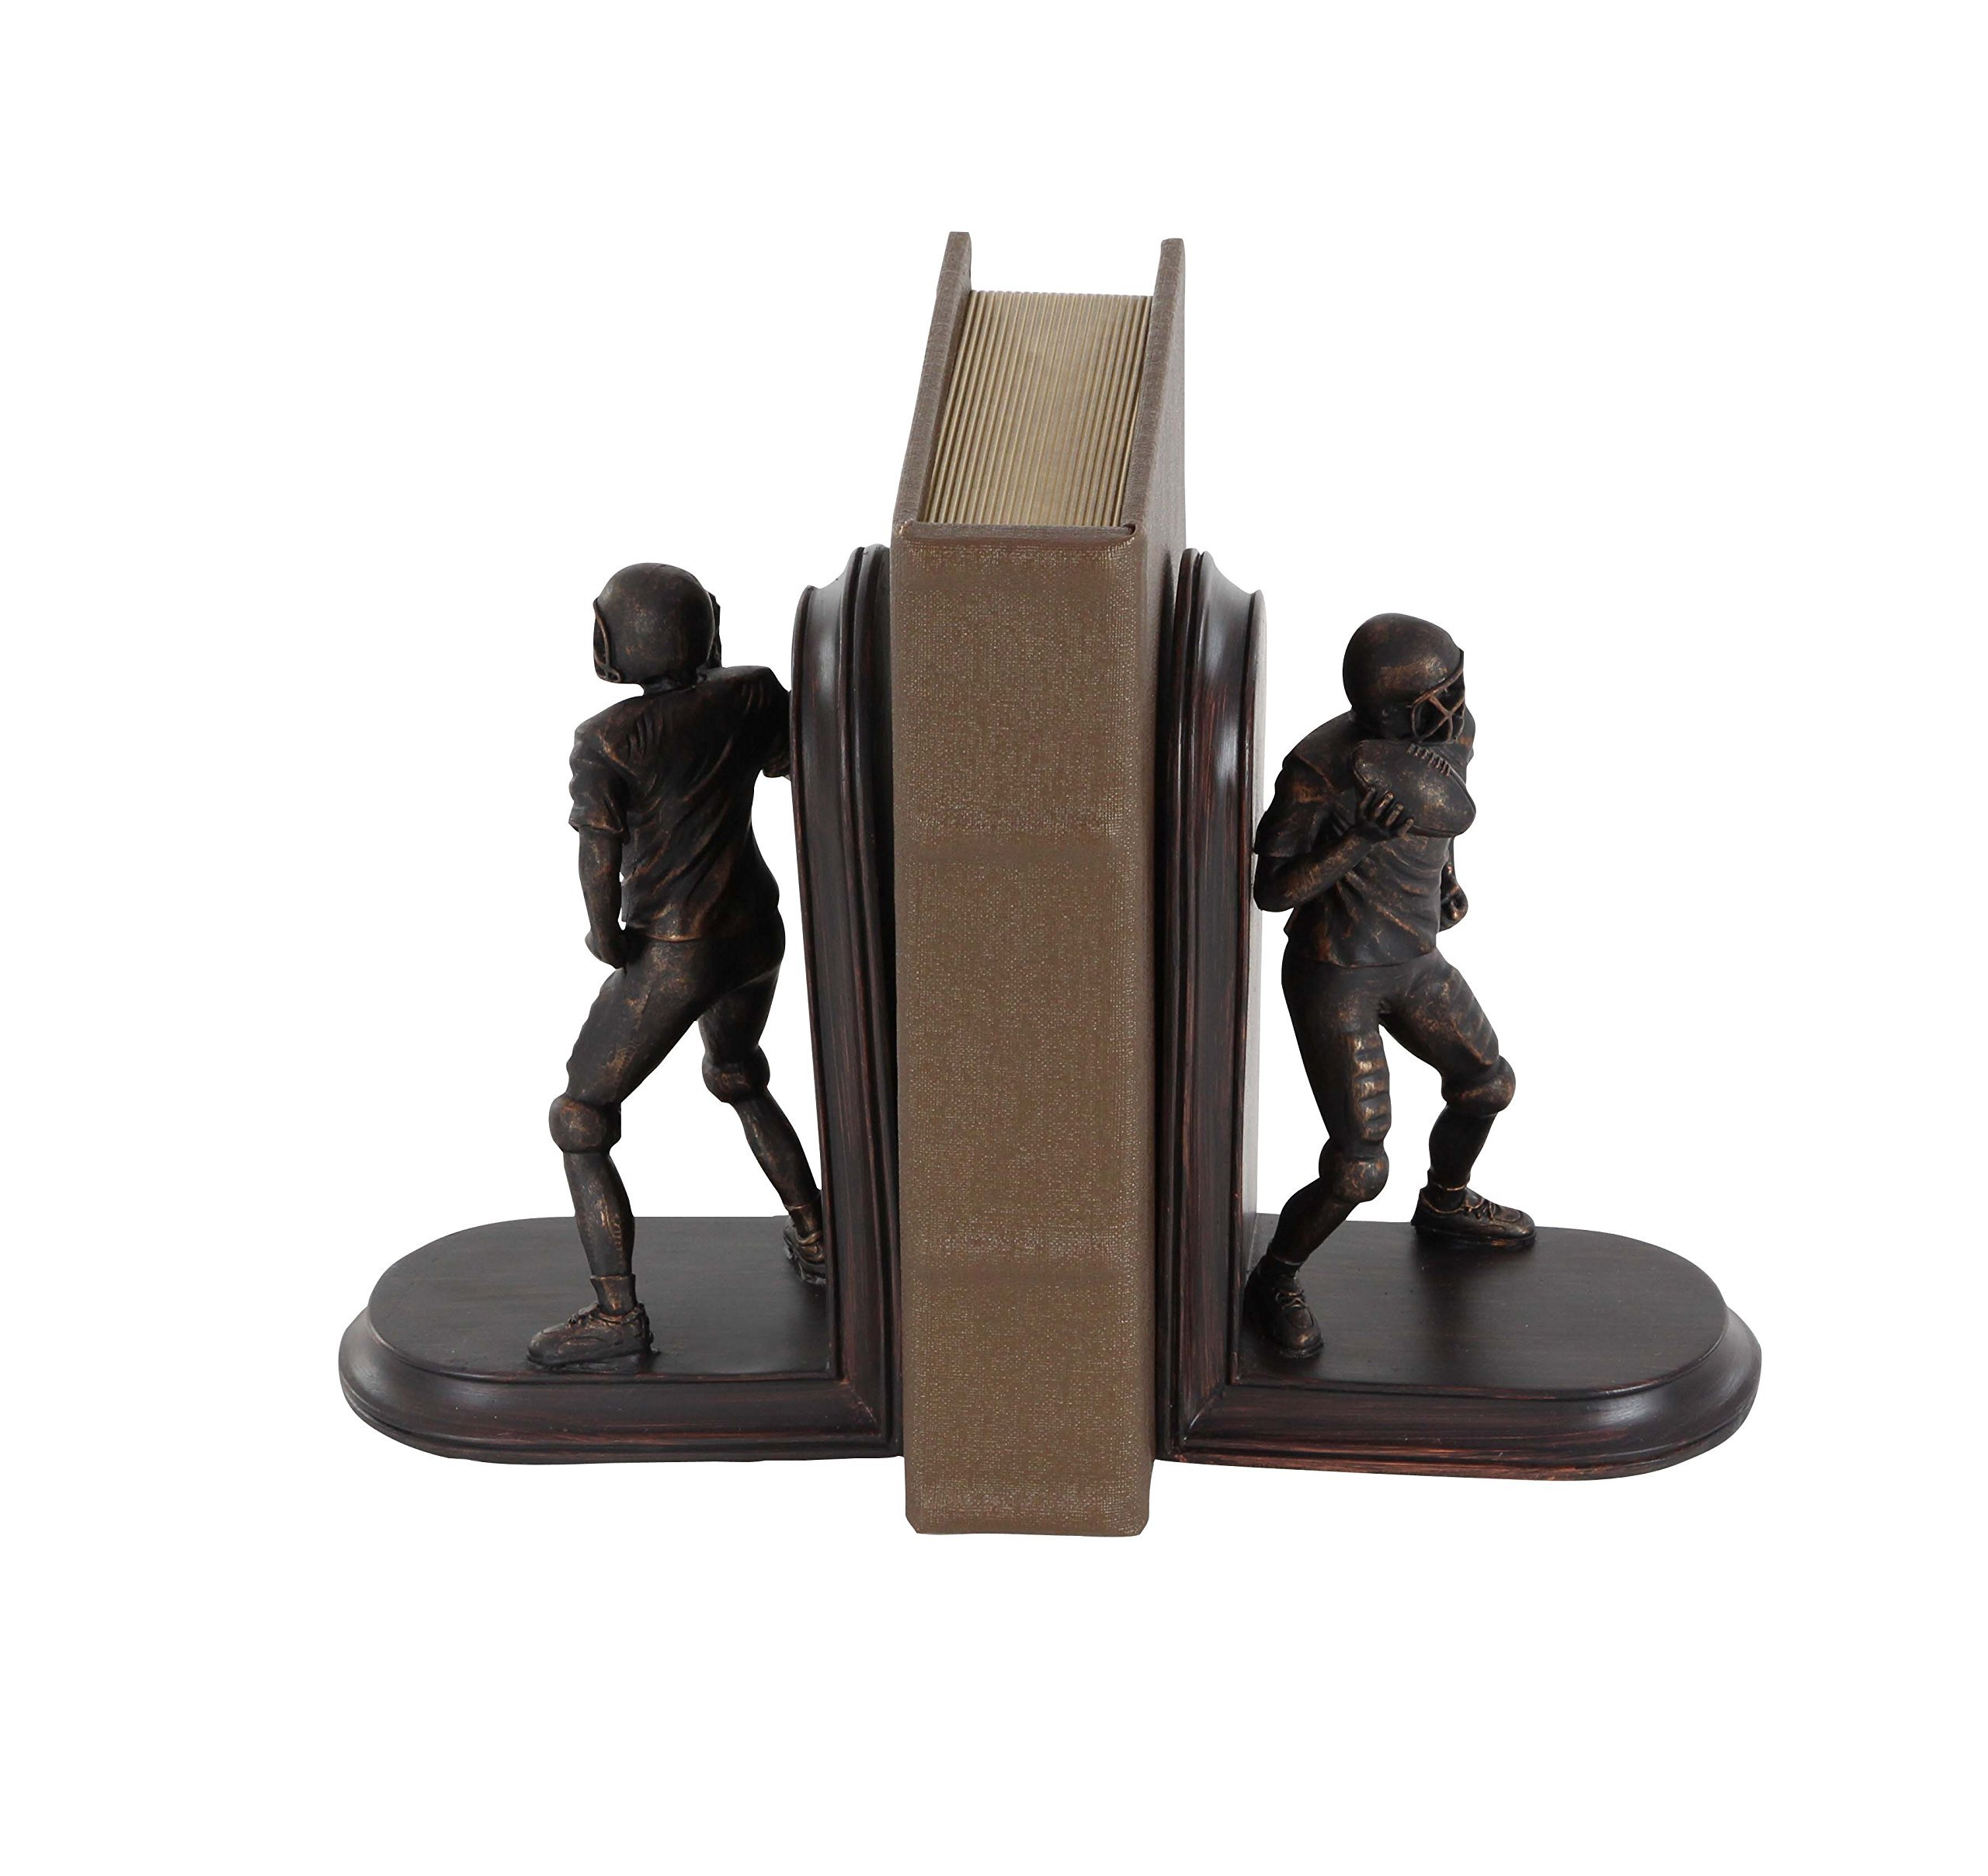 Deco 79 79029 Pair of Football Player Bookends, Brown by Deco 79